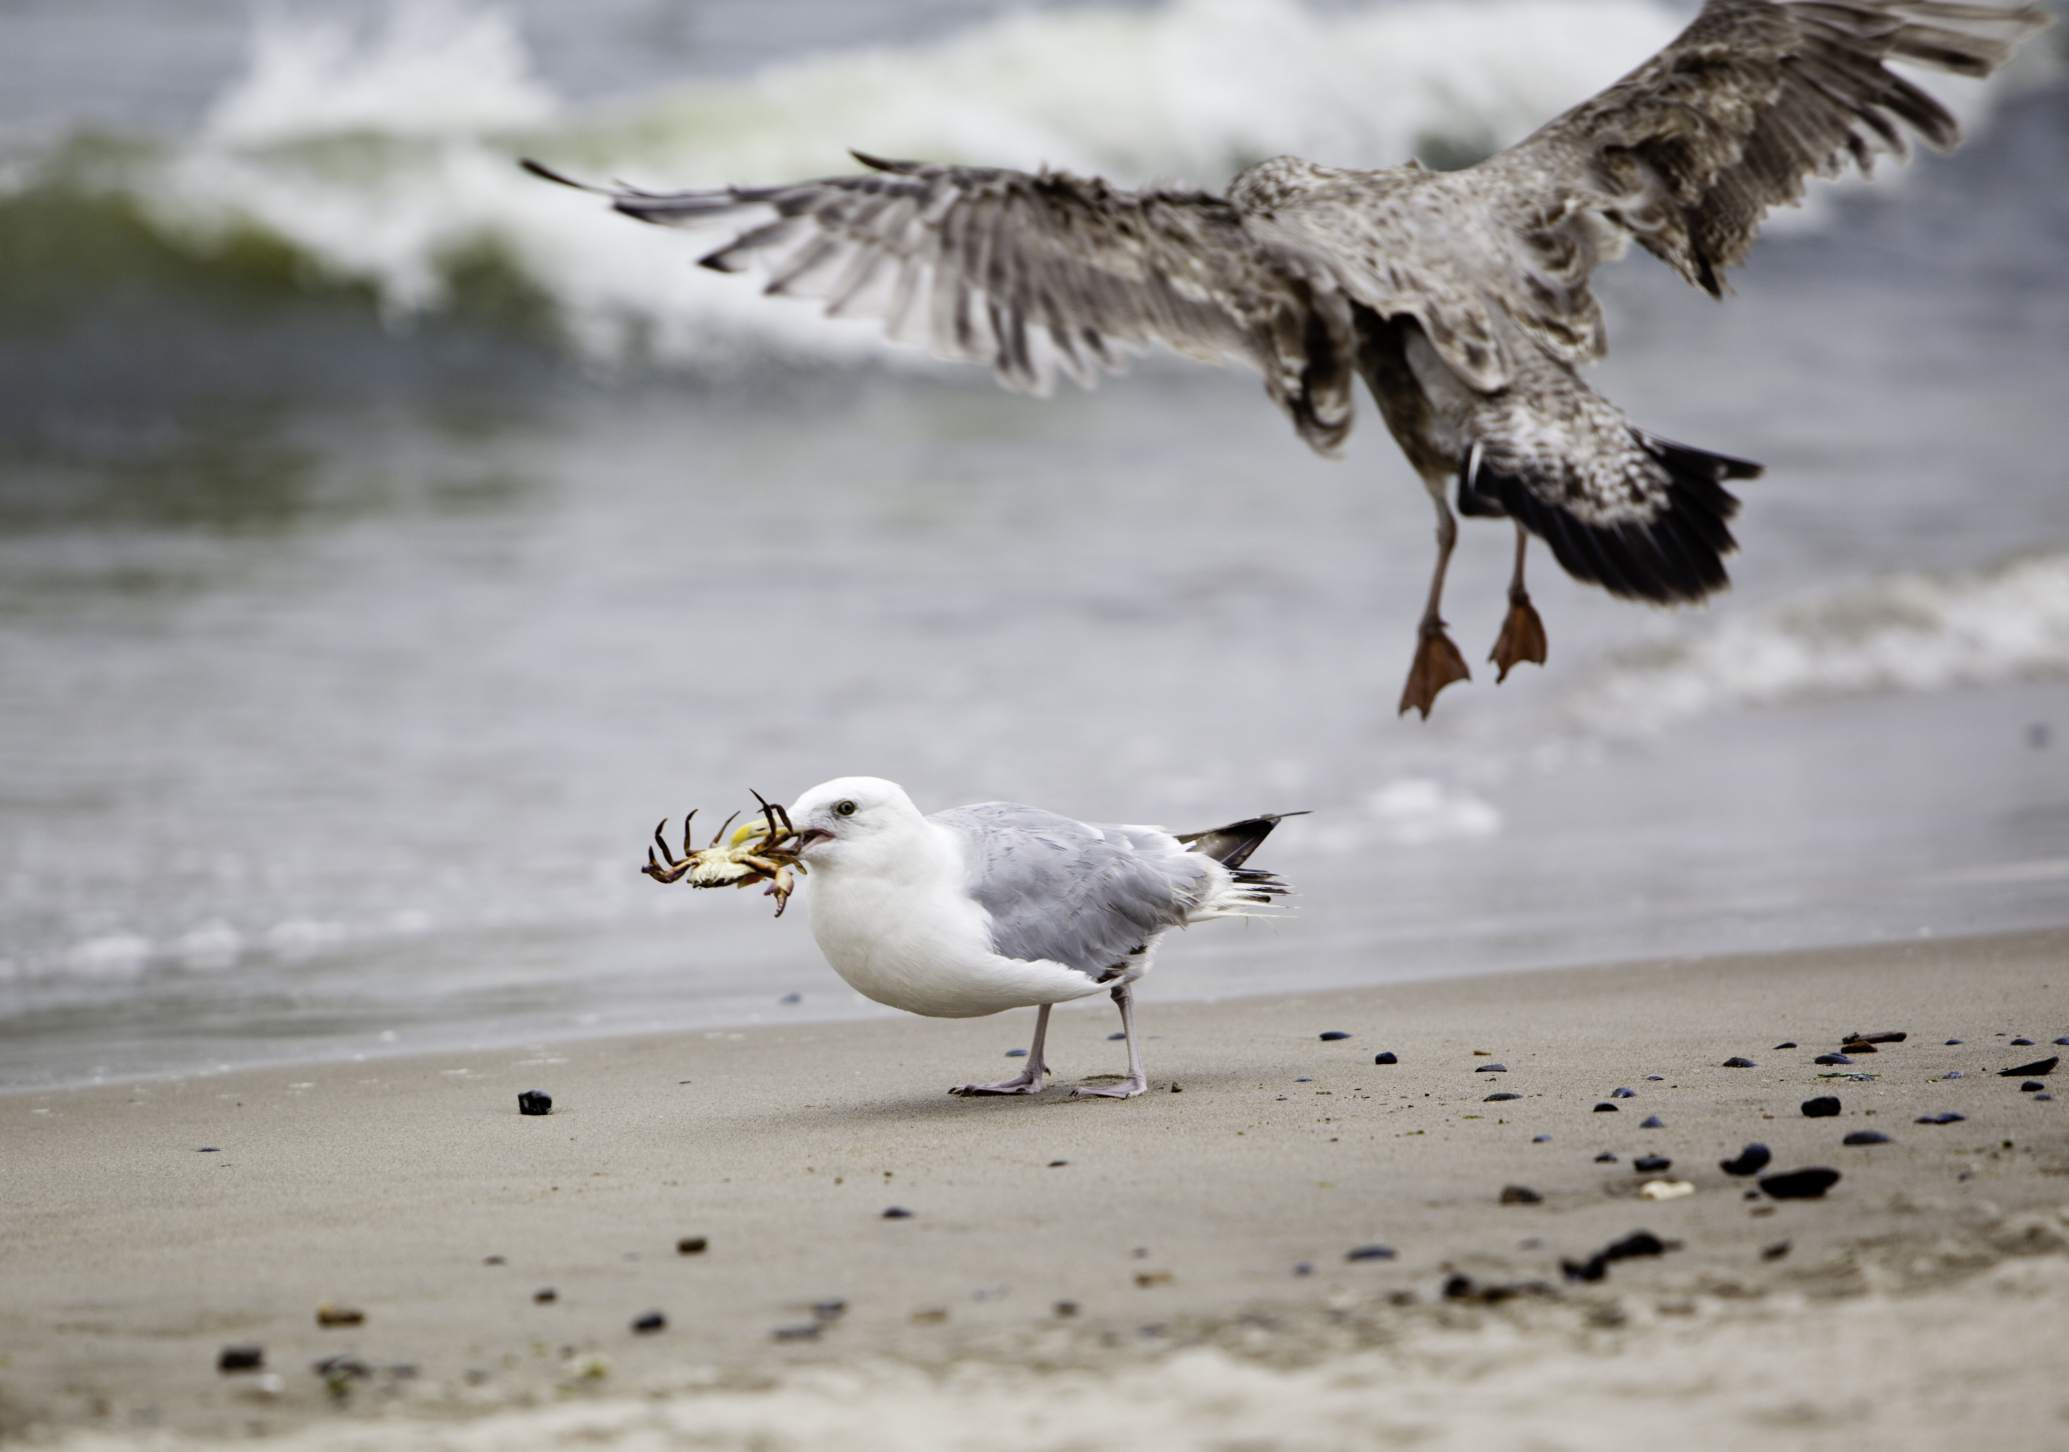 Gull on the beach with a crab in its beak with a second gull flying toward the first, ocean waves in soft focus in the background.